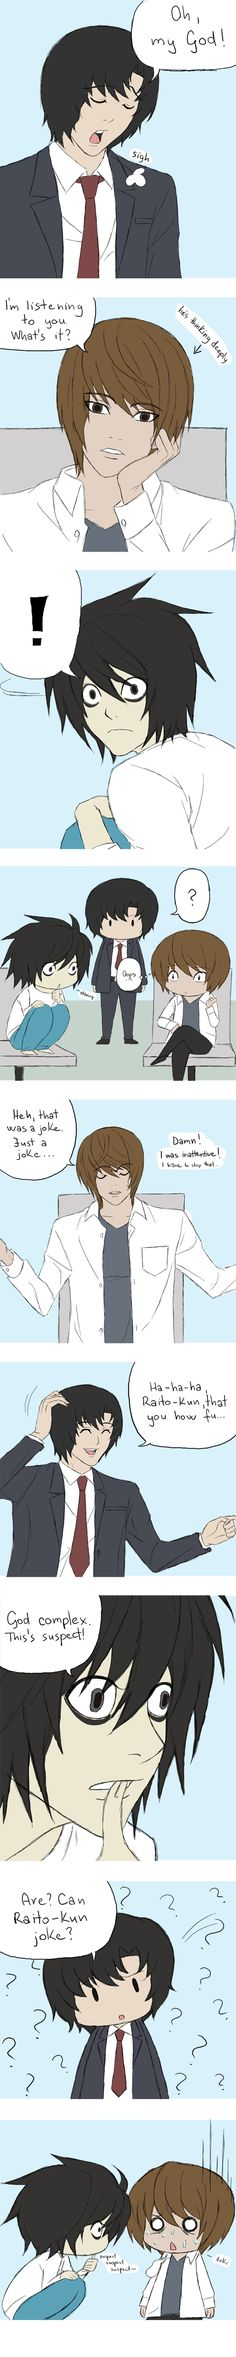 Death Note - God complex XD ignore the grammar mistakes, like I'm trying to